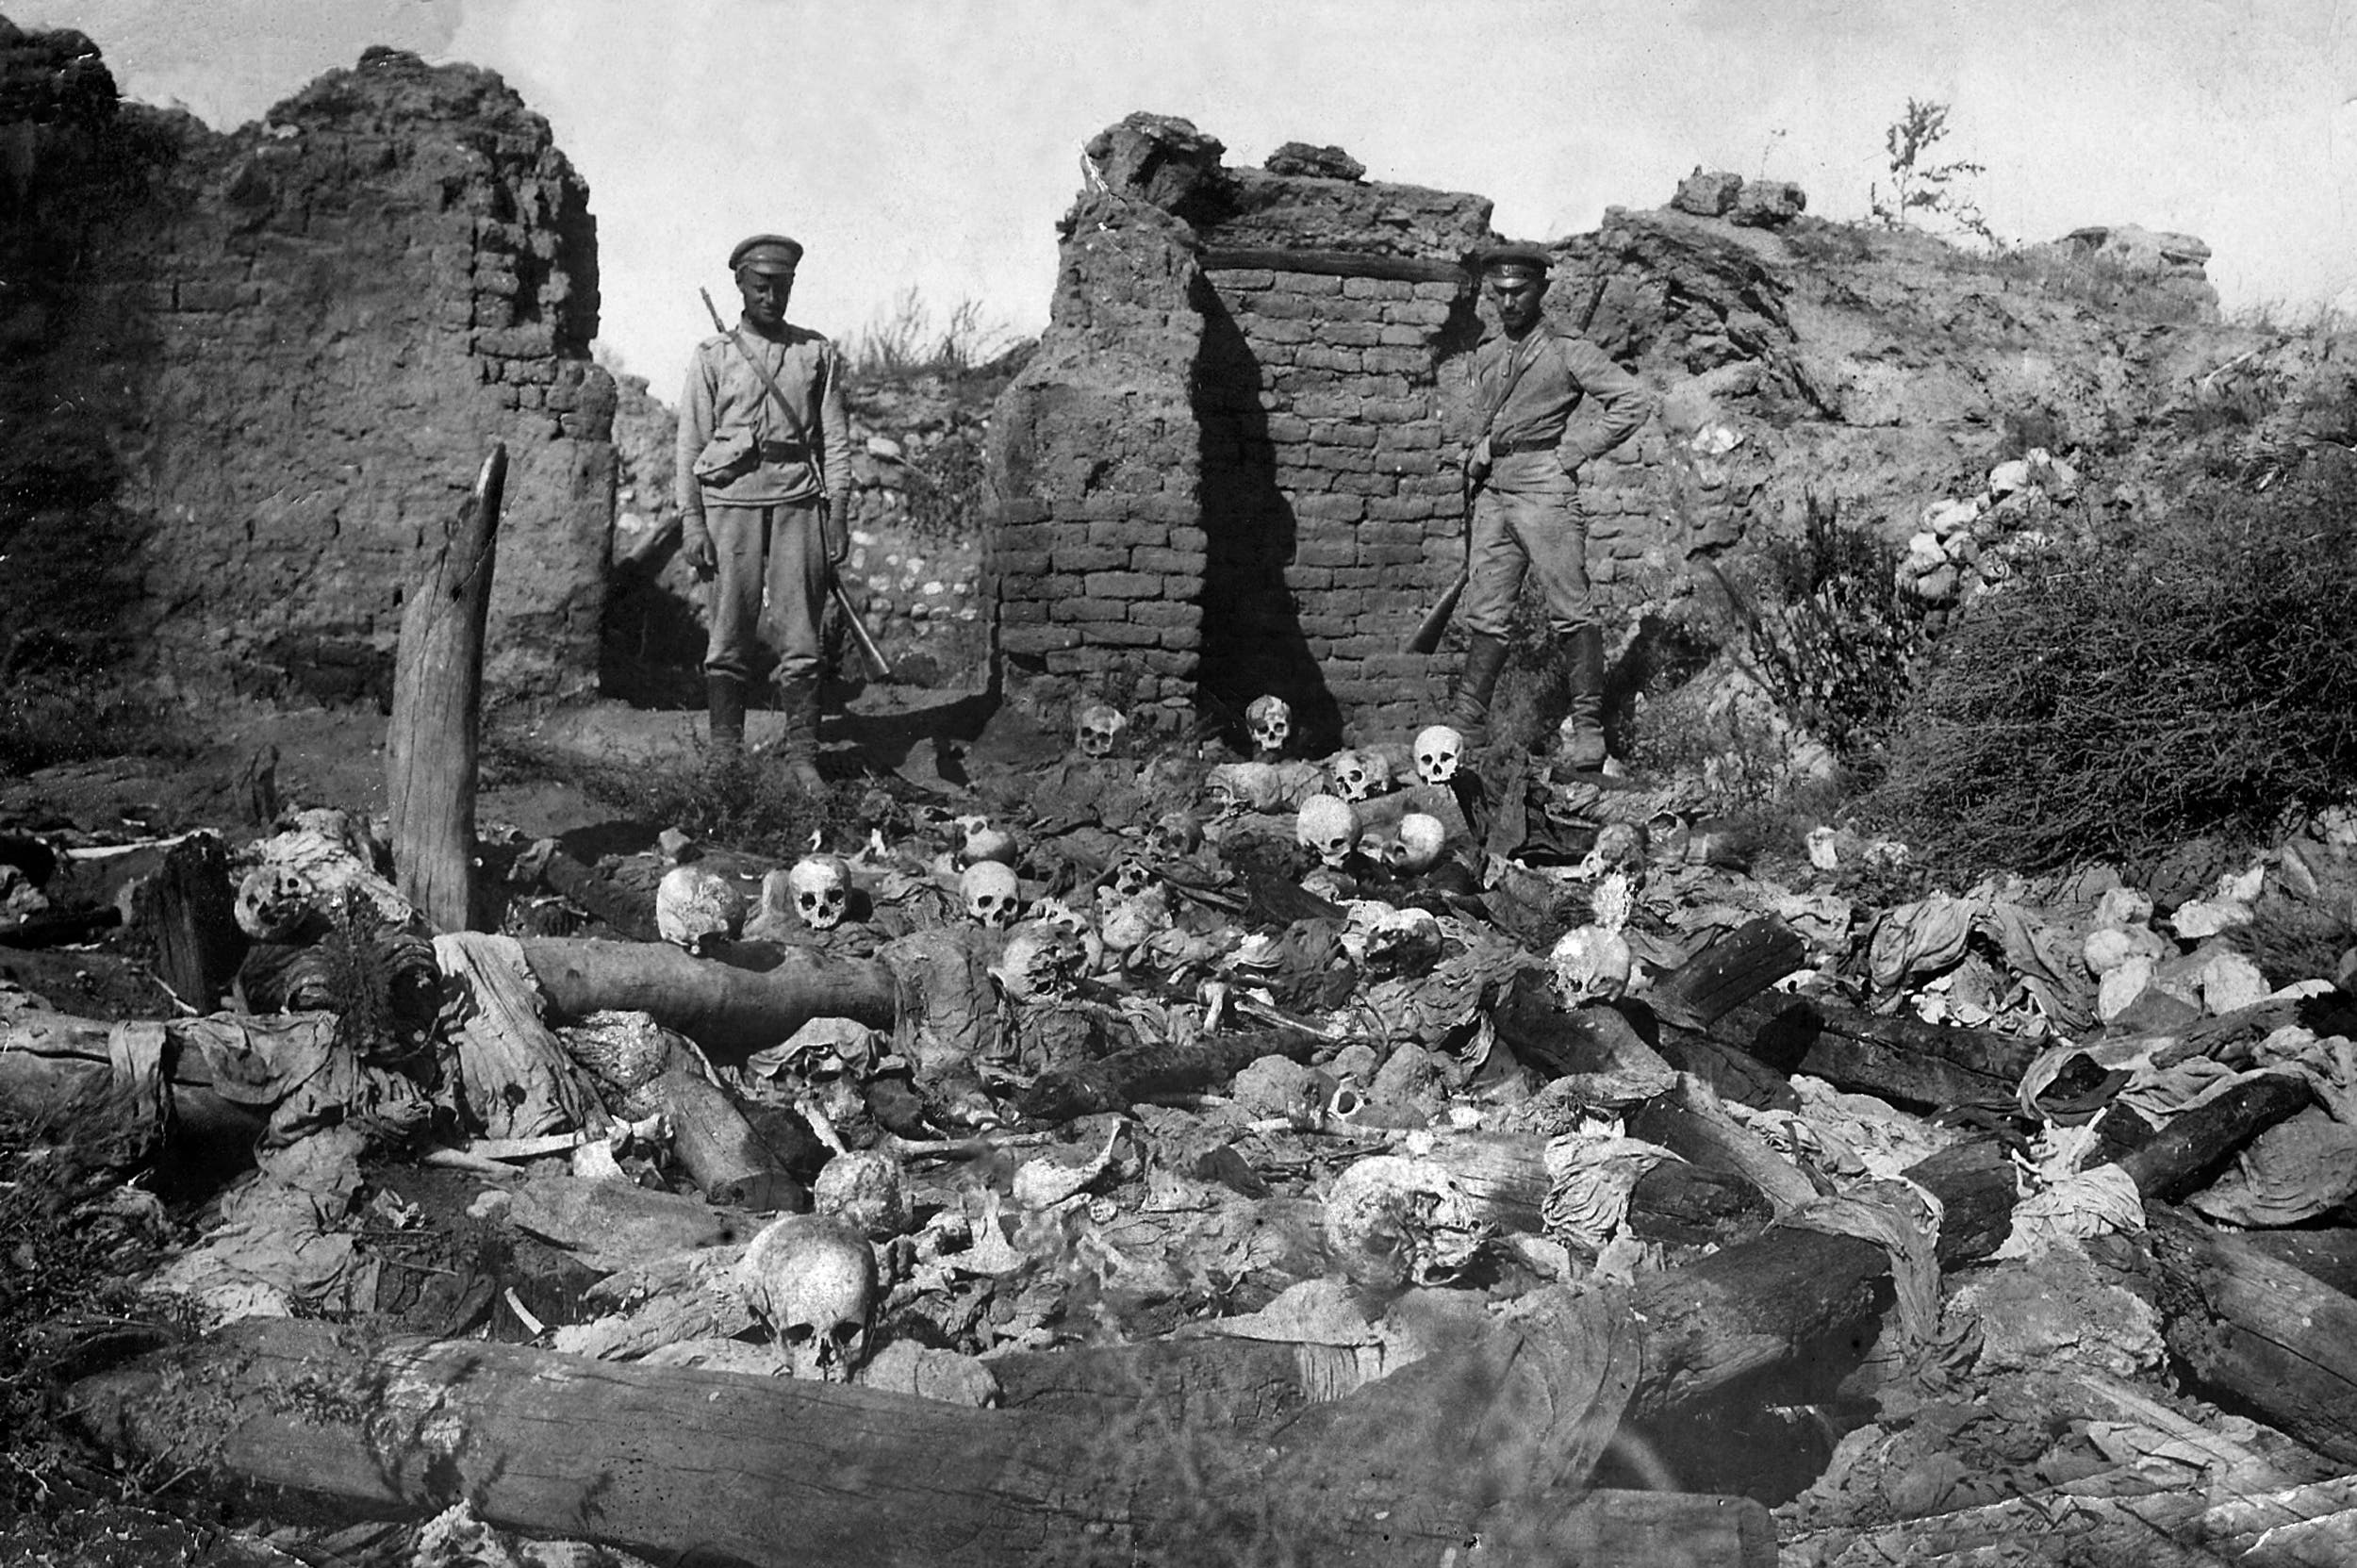 A picture released by the Armenian Genocide Museum-Institute dated 1915 purportedly shows soldiers standing over skulls of victims from the Armenian village of Sheyxalan in the Mush valley, on the Caucasus front during the First World War. Armenians say up to 1.5 million of their forebears were killed in a 1915-16 genocide by Turkey's former Ottoman Empire. Turkey says 500,000 died and ascribes the toll to fighting and starvation during World War I. (AFP)